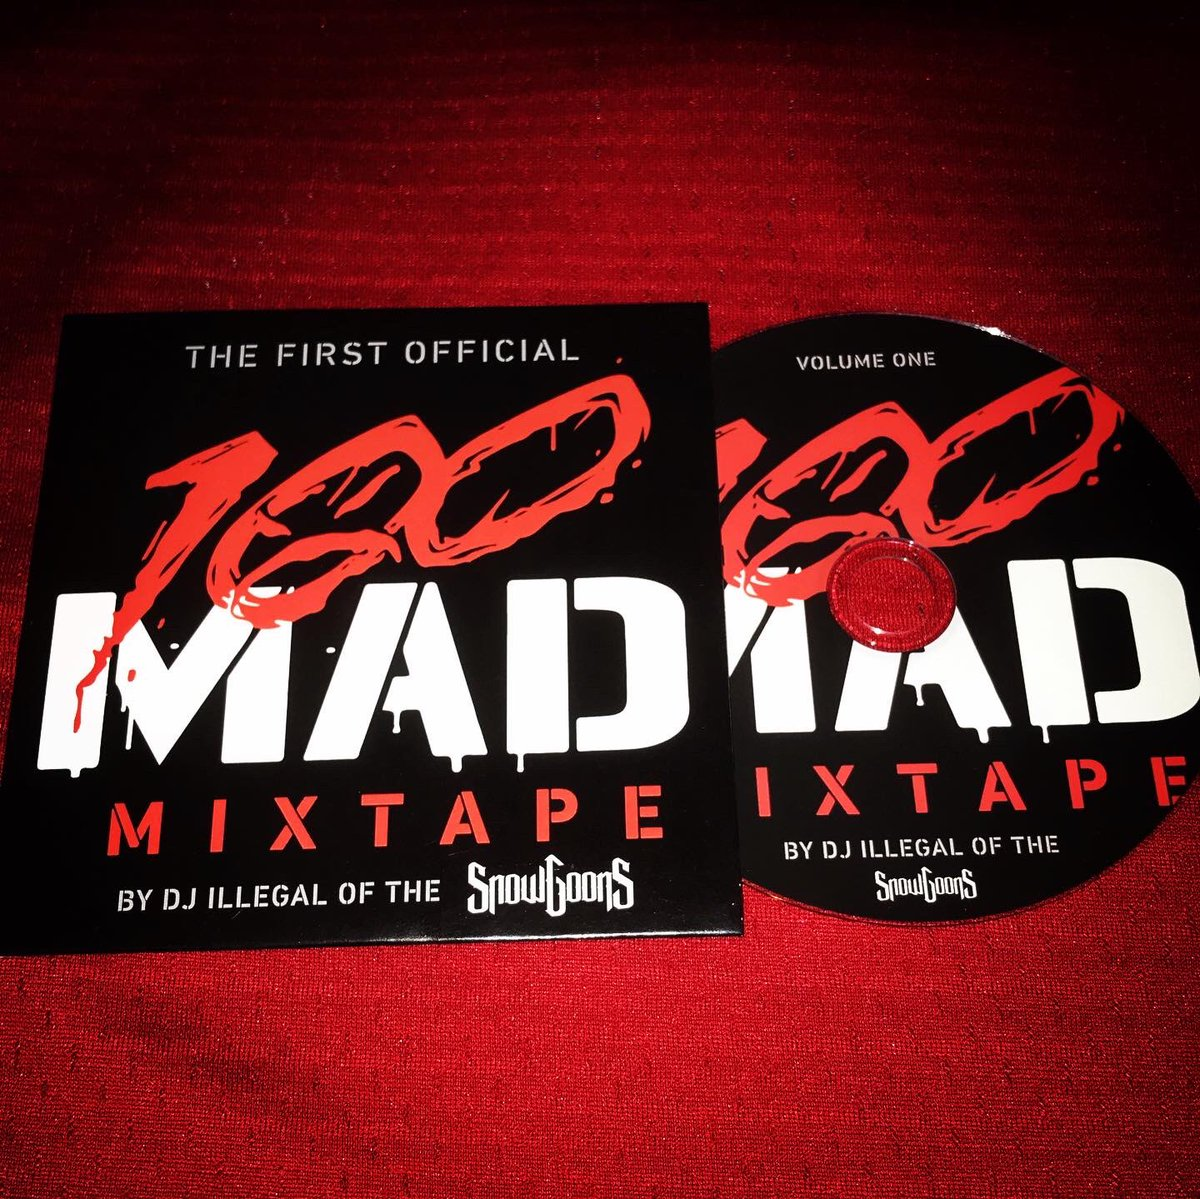 """💯MAD MIXTAPE""  ❄️🔥❄️🔥❄️🔥❄️🔥❄️🔥❄️🔥  頭からケツまで、最高の暑苦しさ!  #100mad #snowgoons #djillegal #goonmusick #goonsgear #onyx https://t.co/YERzTnroWH"